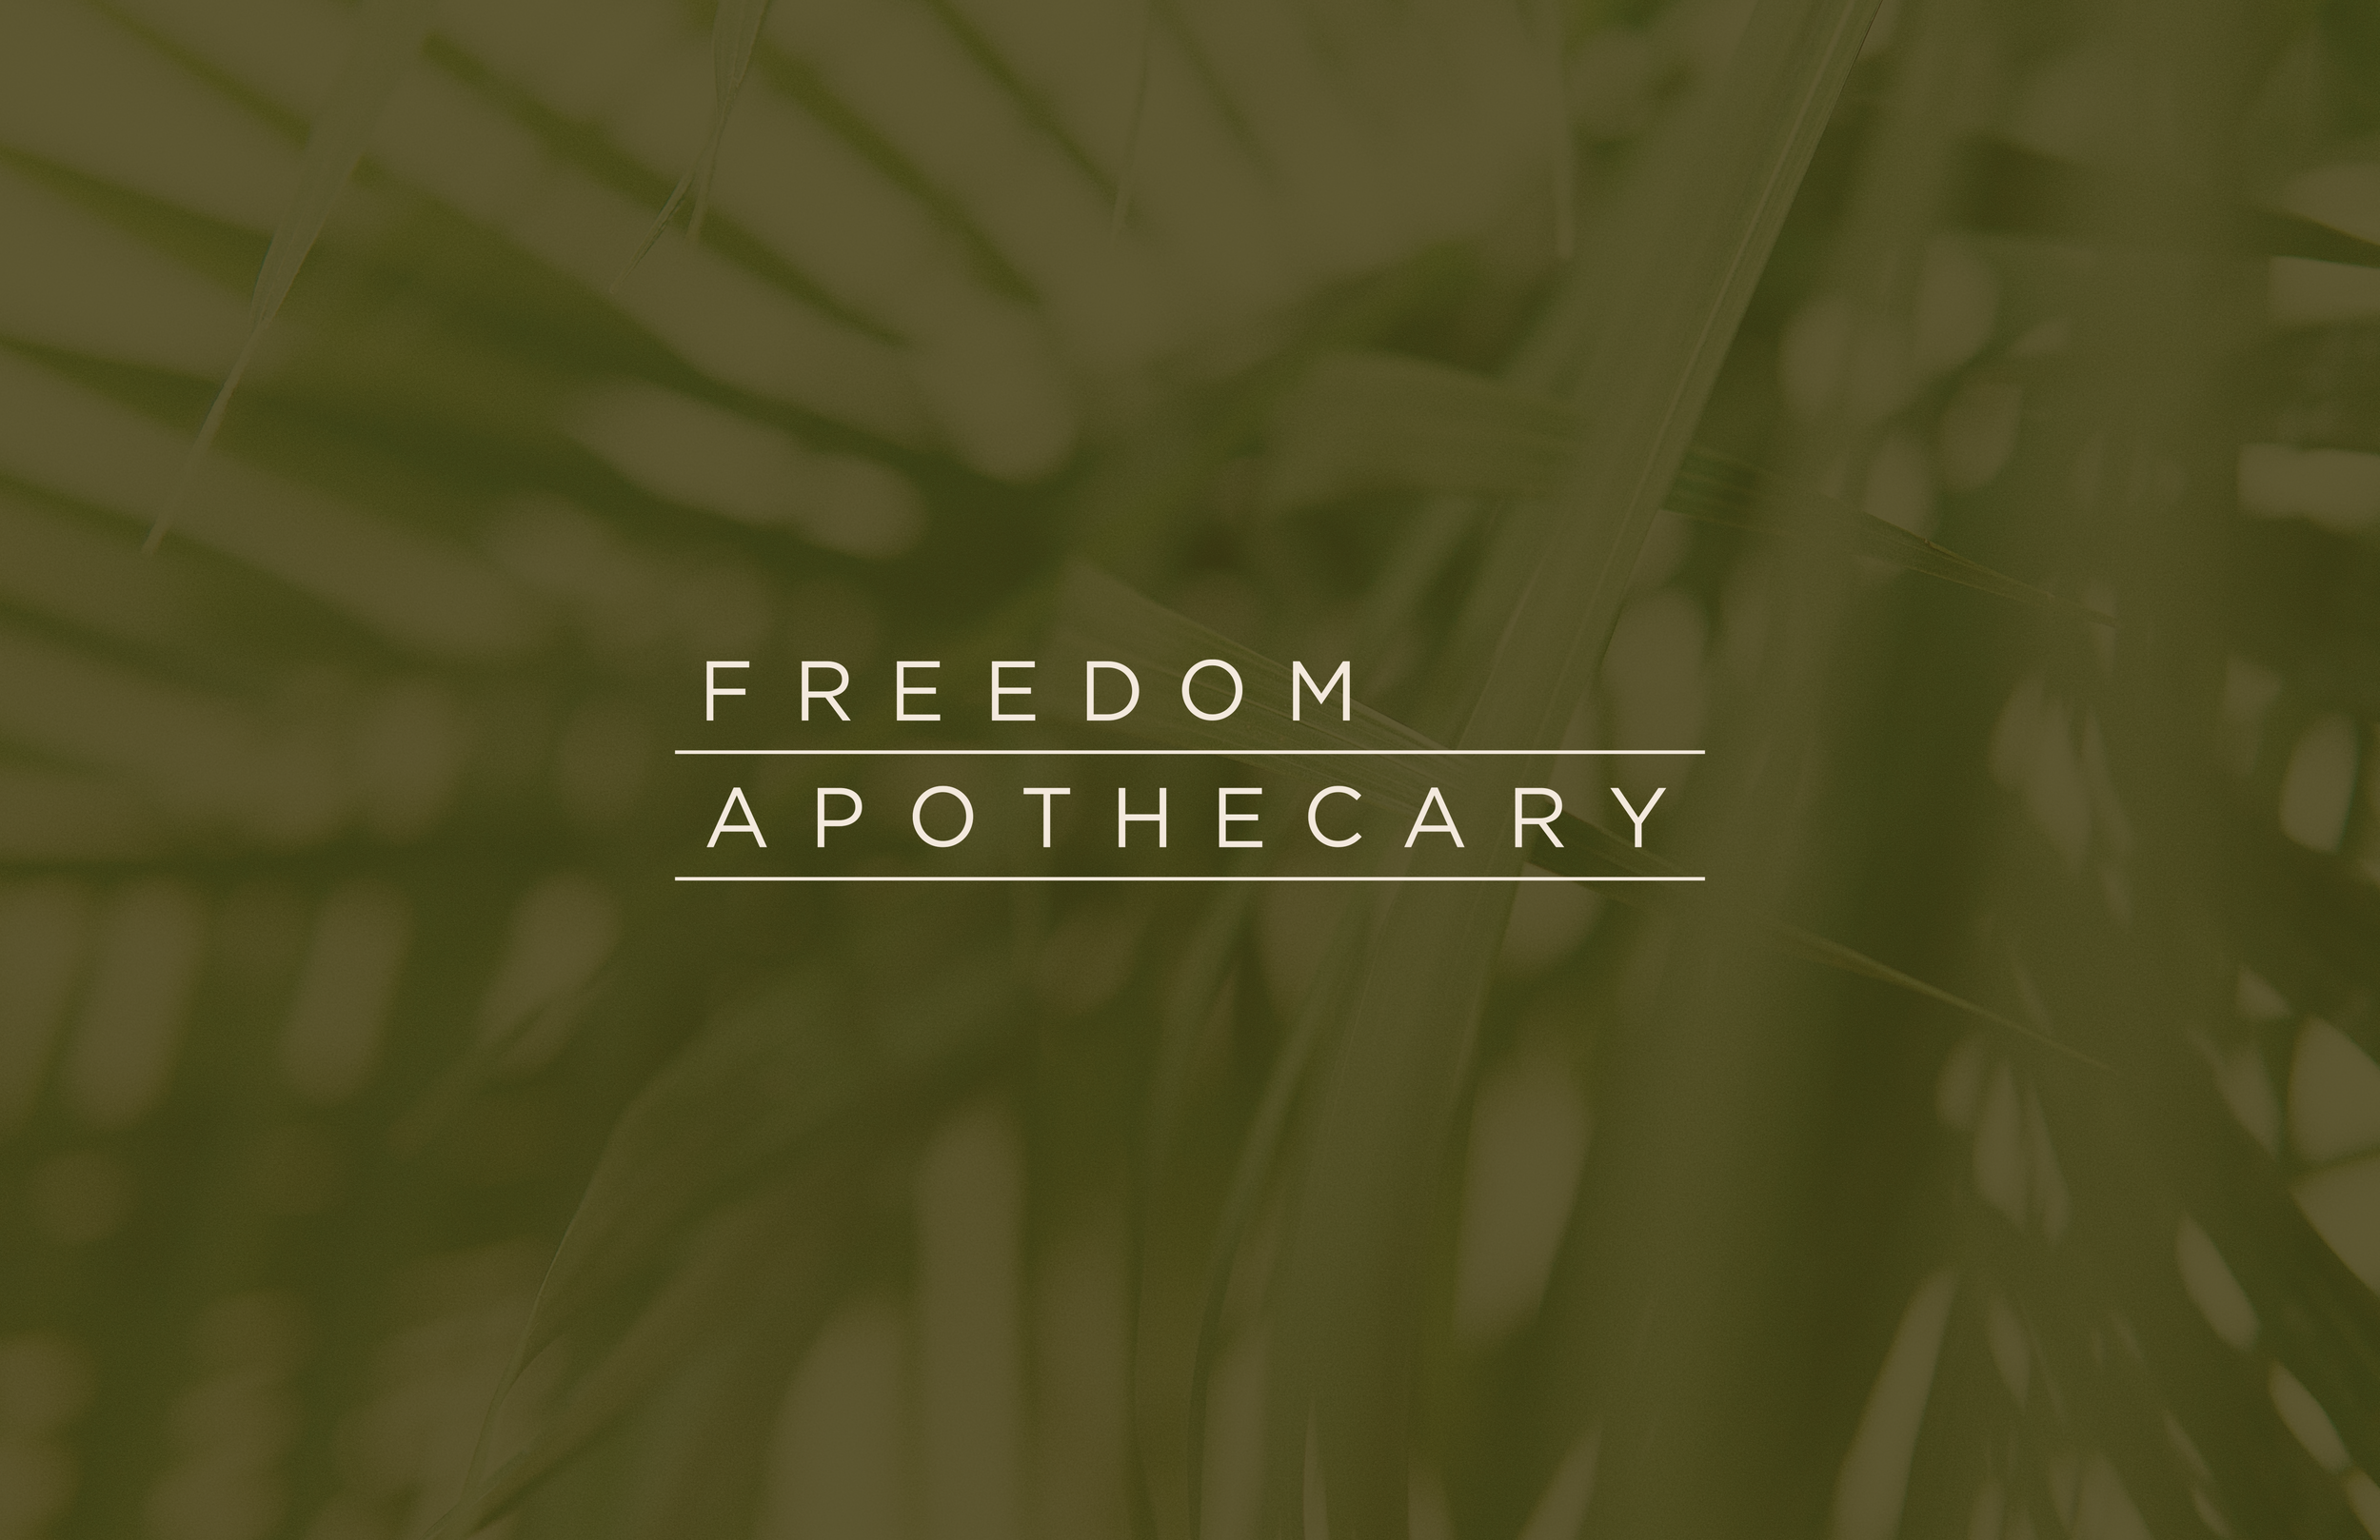 Freedom-Apothecary-Darnell-Lamont_01.png